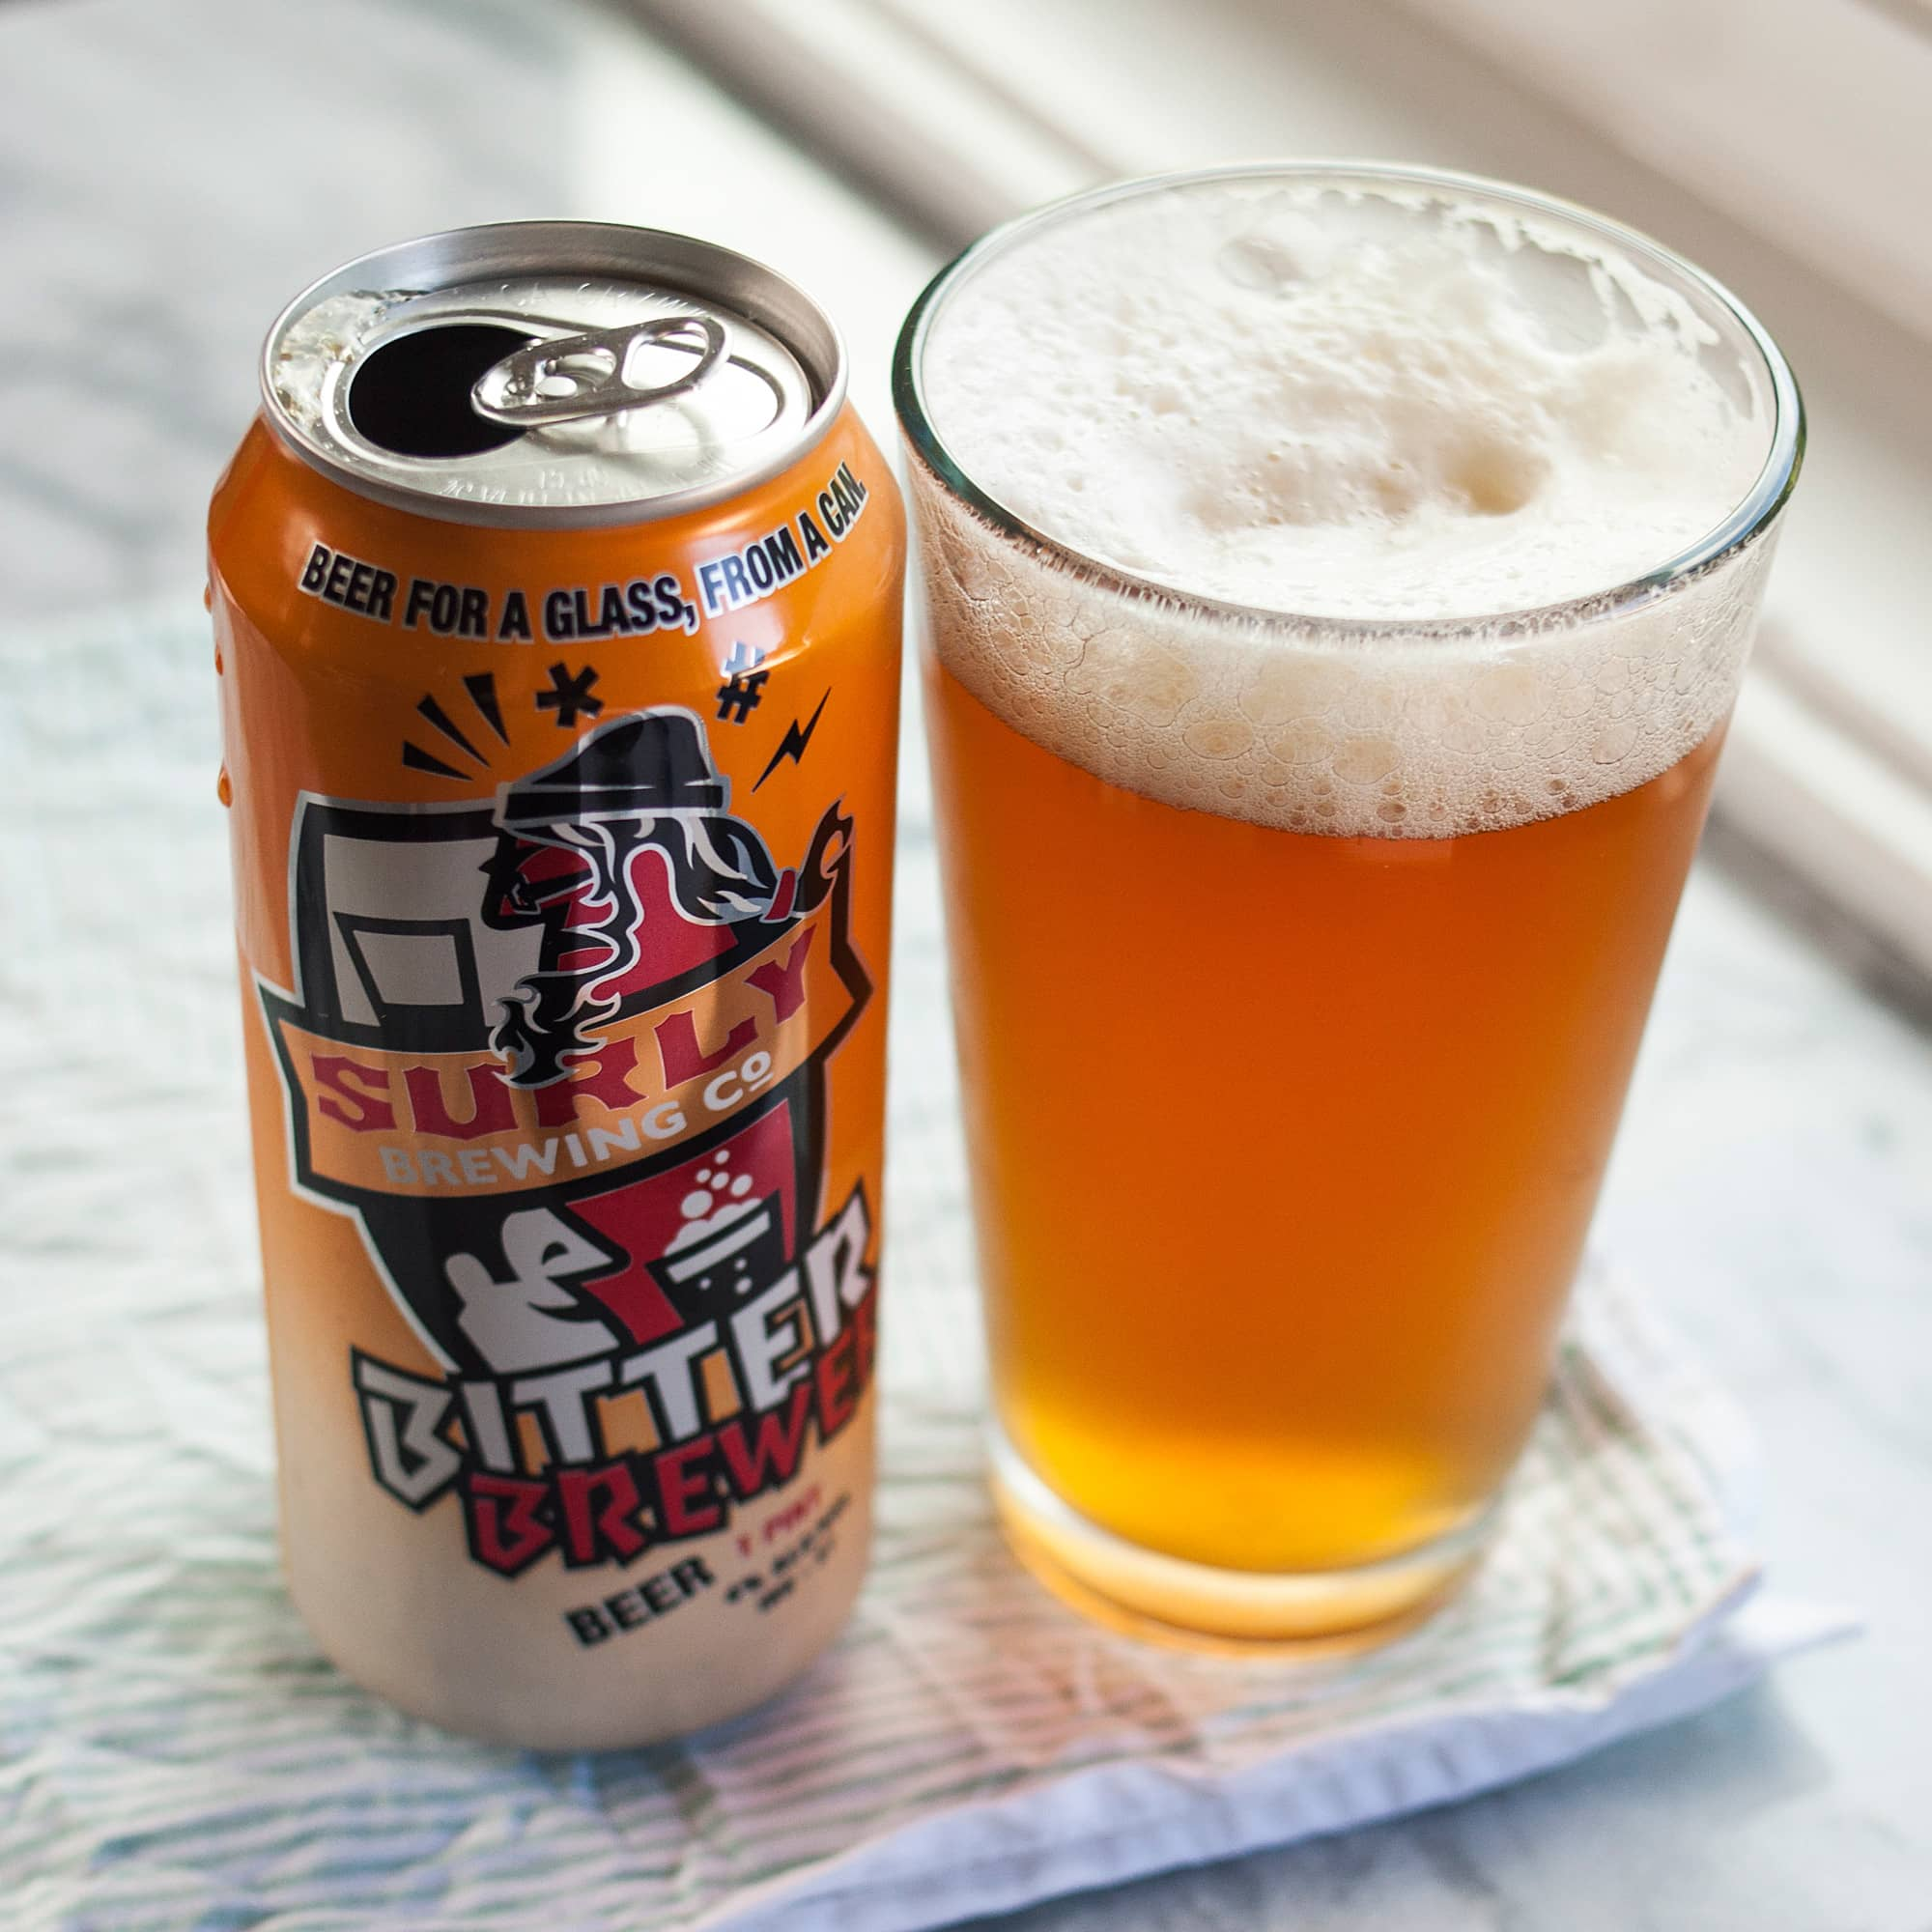 Beer Review: Bitter Brewer Beer from Surly Brewing Co.